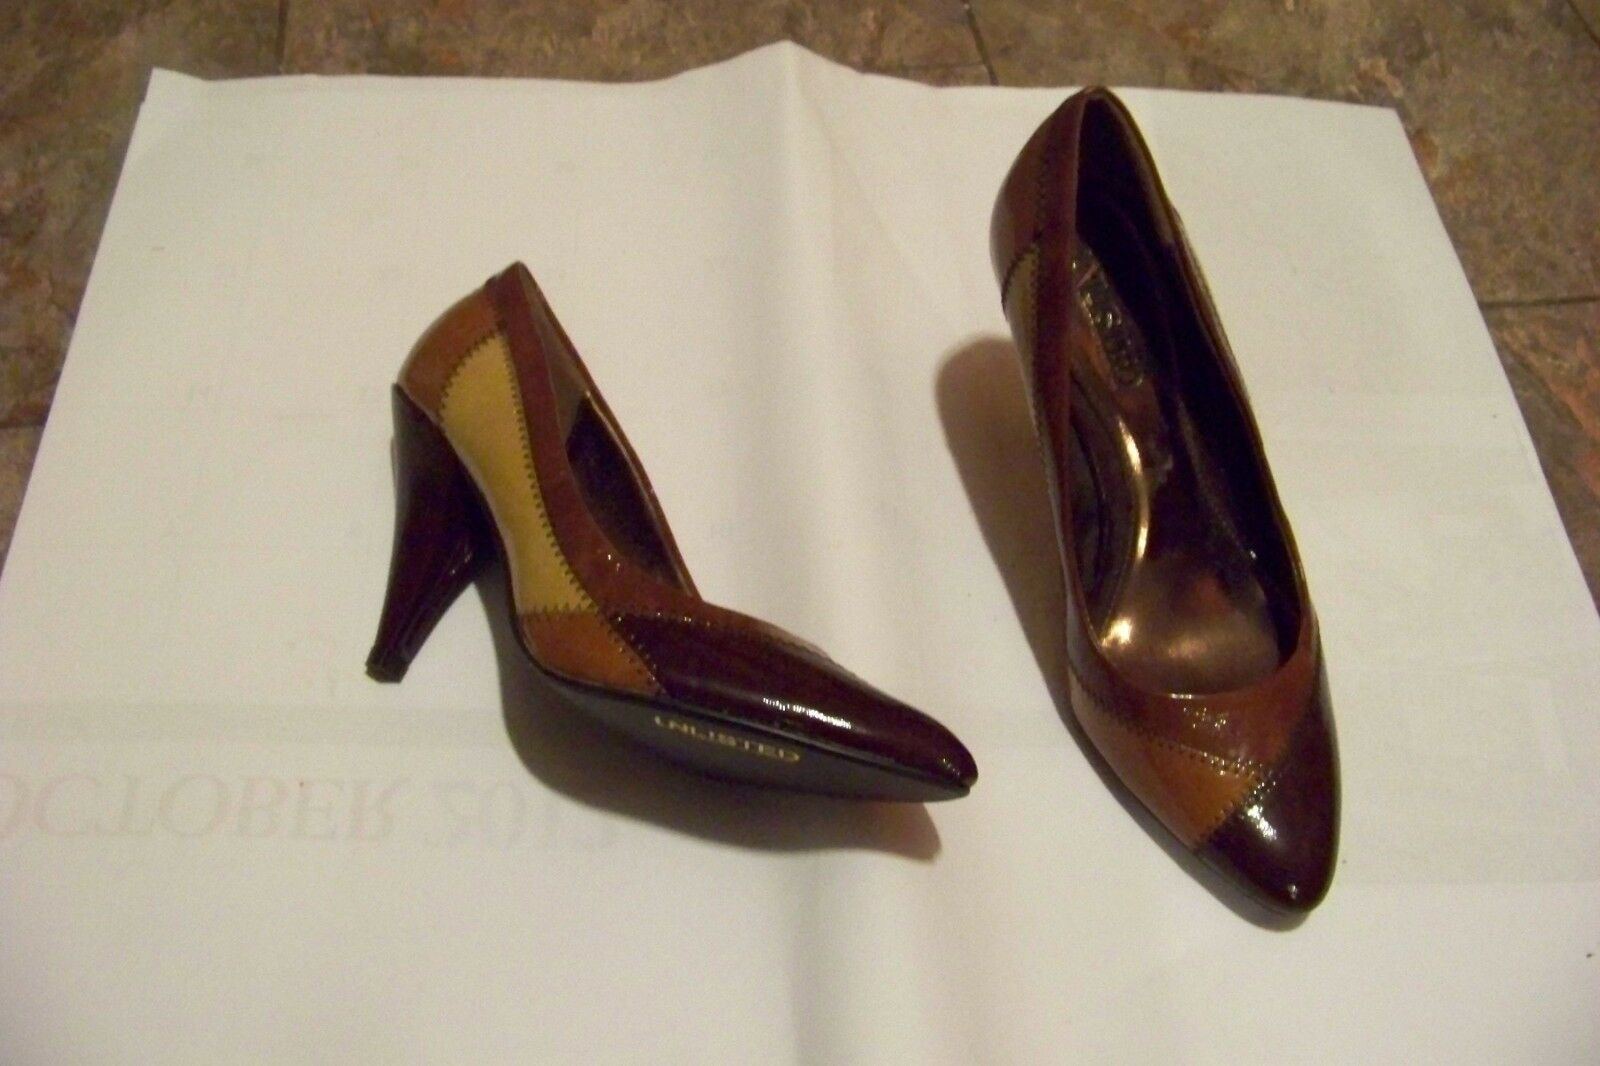 womens unlisted kenneth cole my change shoes multi brown patent heels shoes change size 7 0a41eb